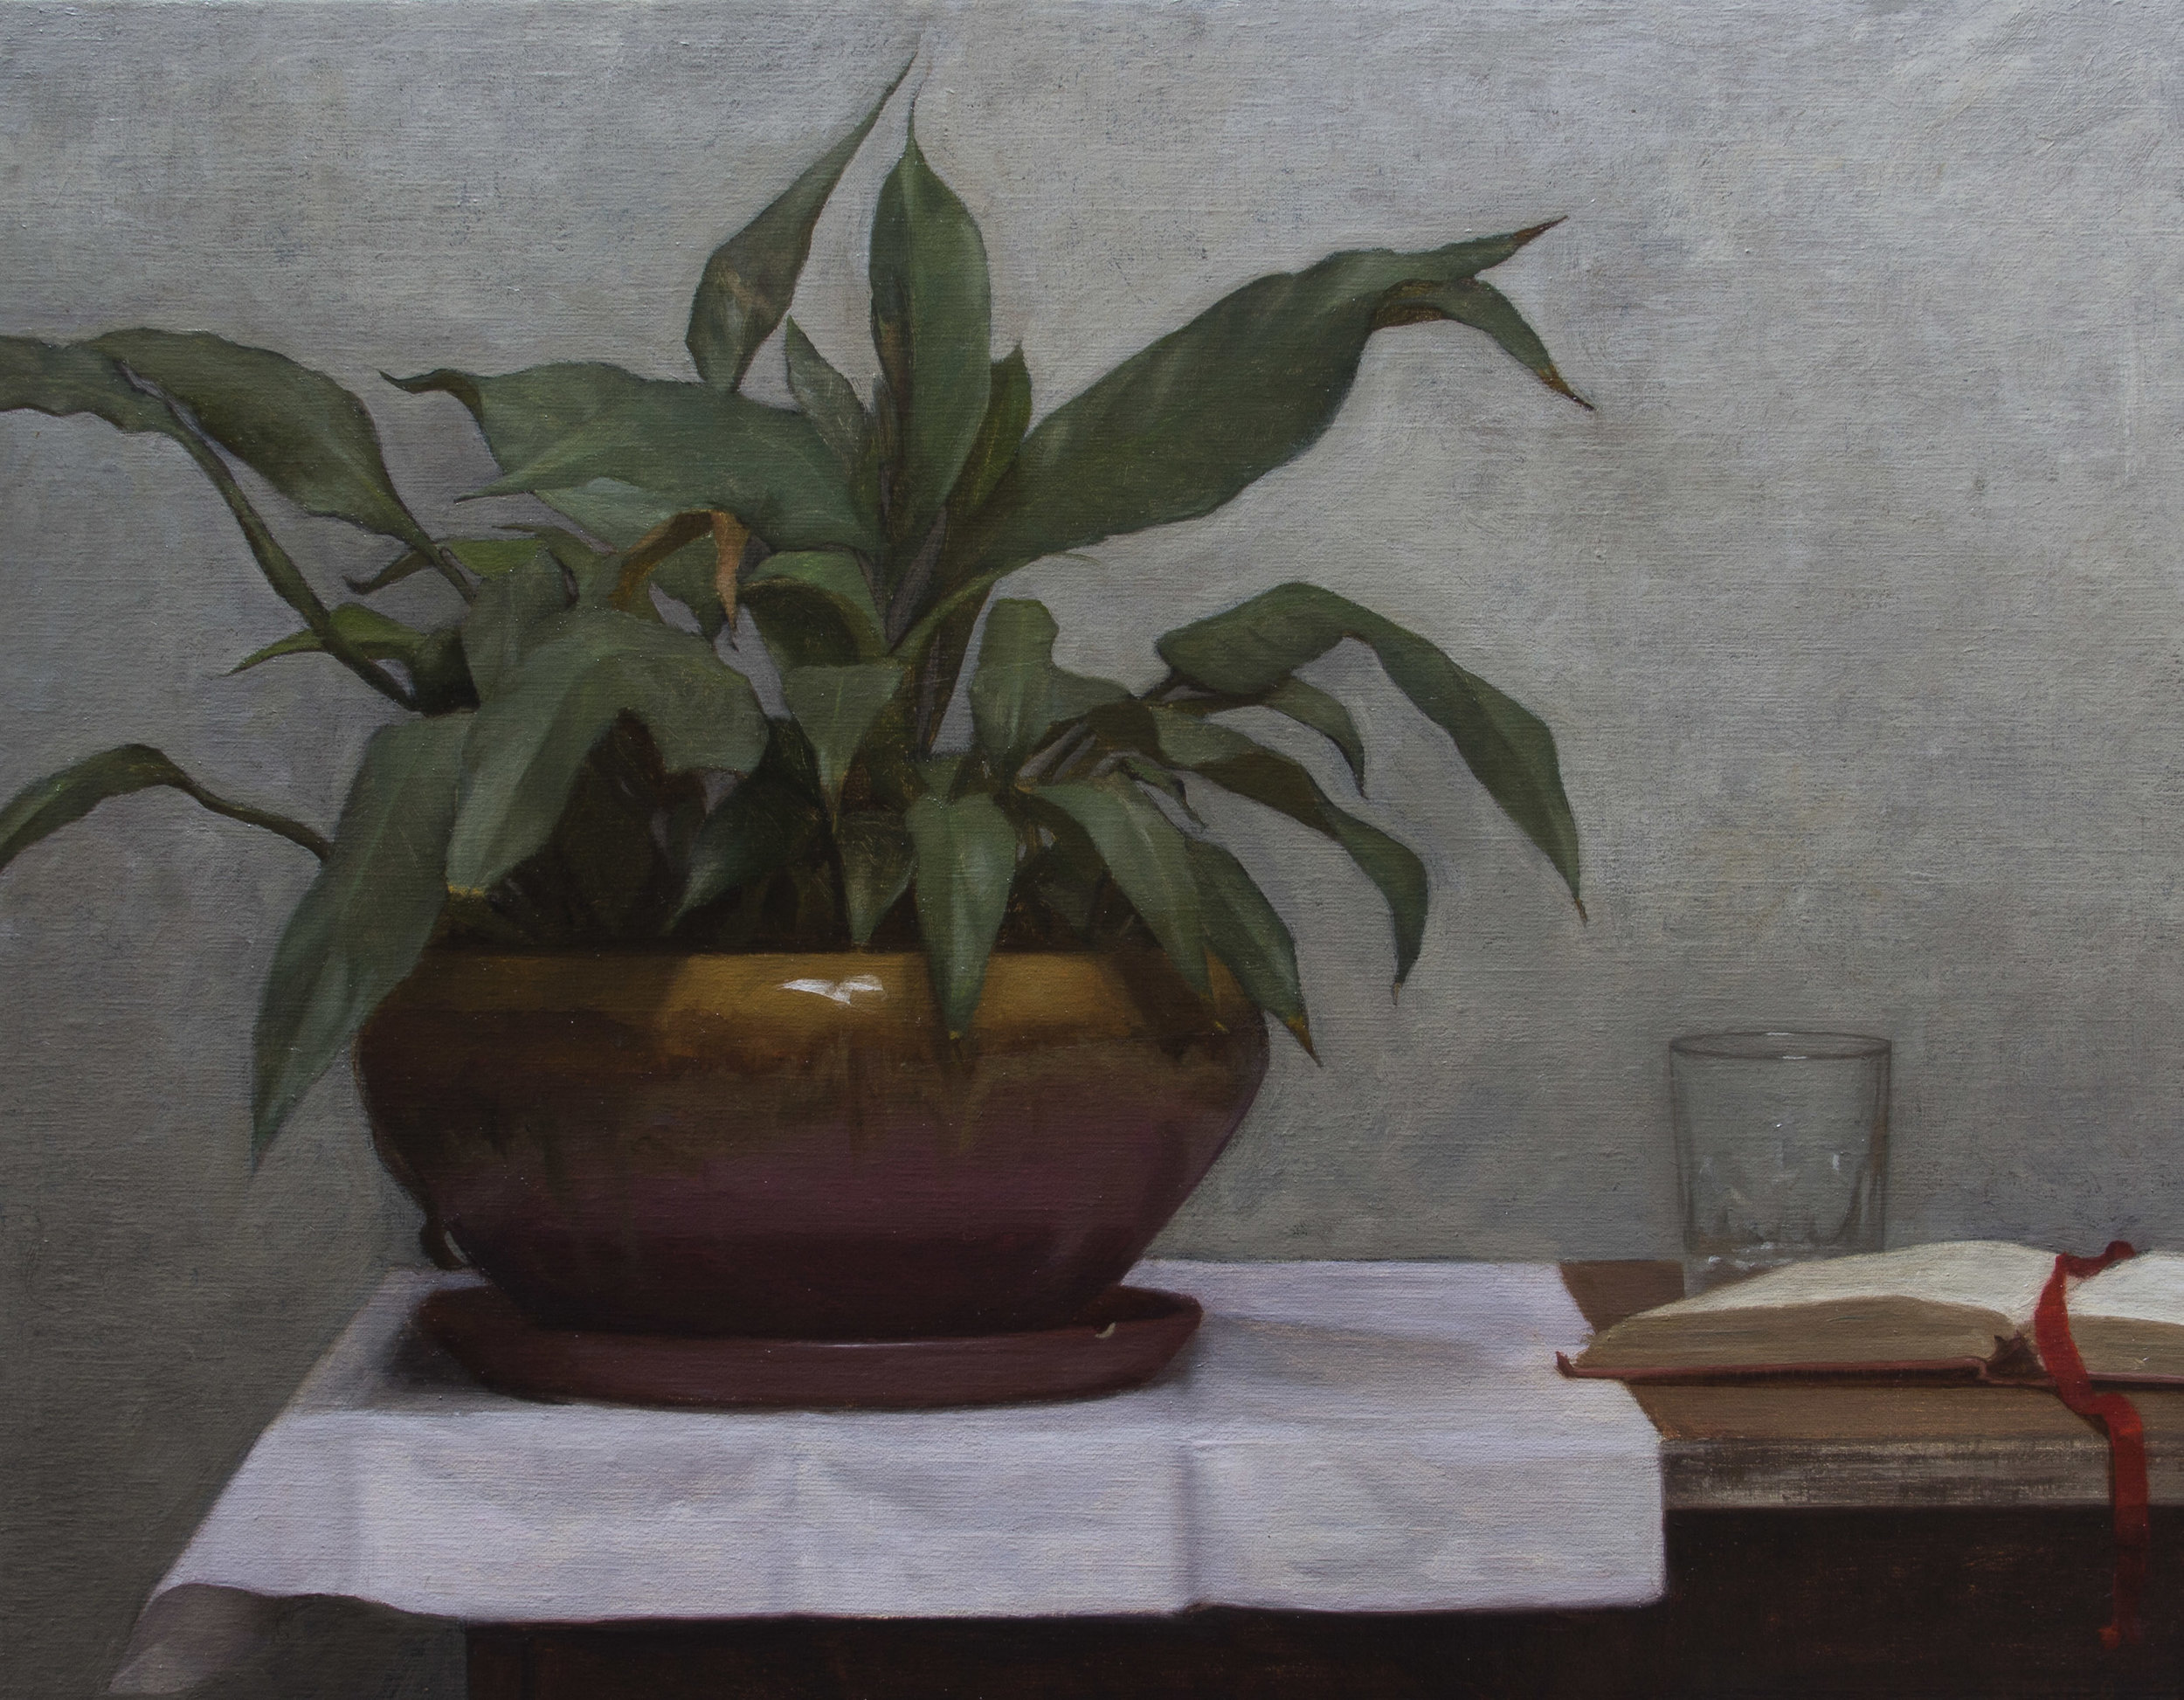 Potted Plant and Journal  by Rodrigo Mateo, 2018, oil on canvas. 18 x 14 in, $2,400